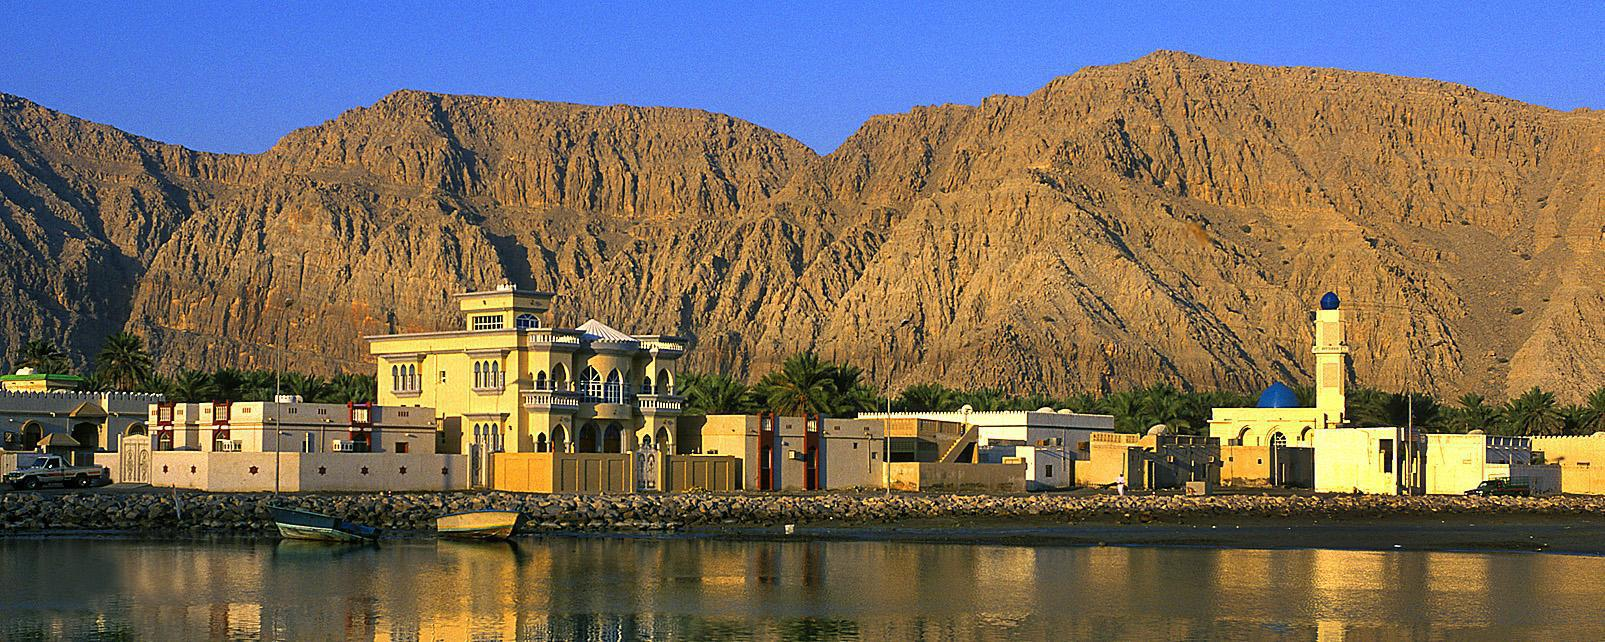 Travel To Khasab Oman Khasab Travel Guide Easyvoyage